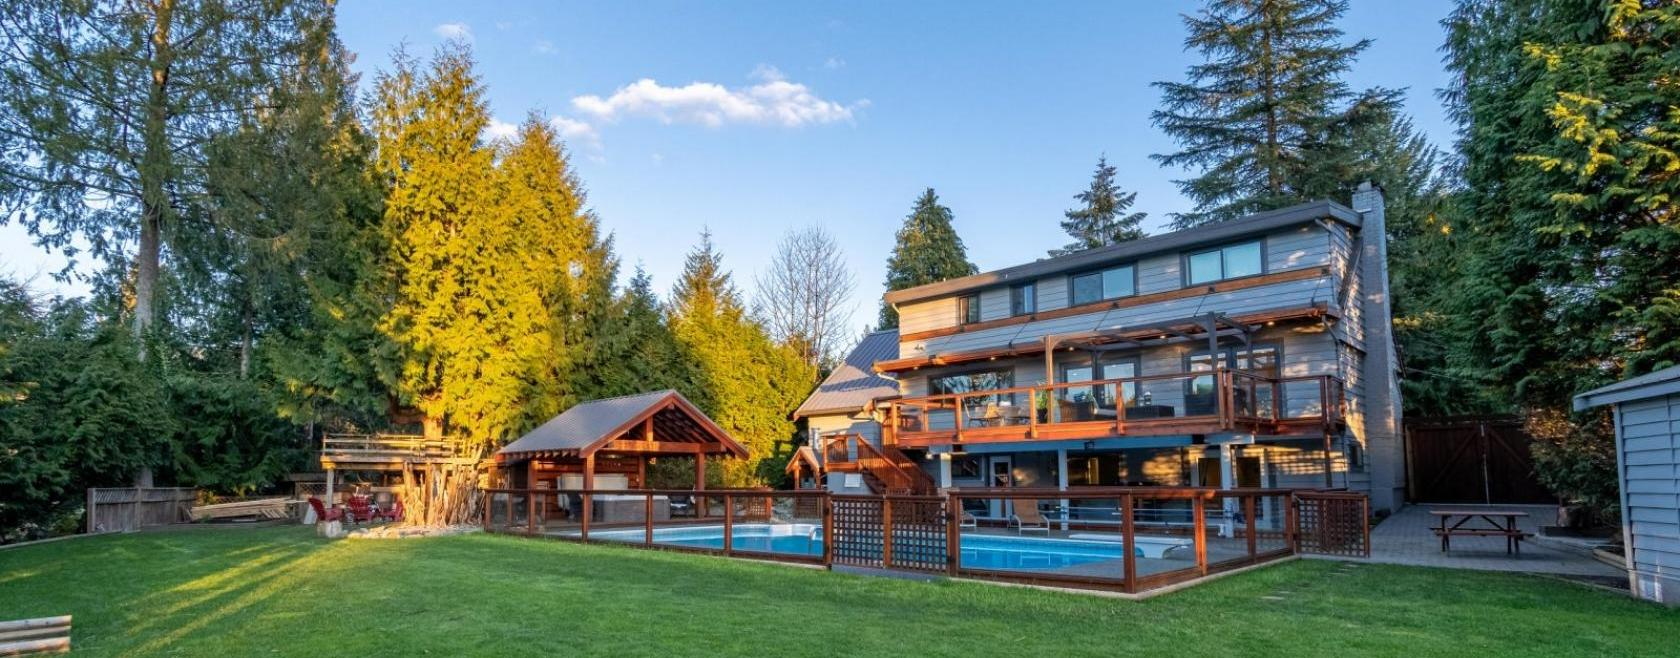 2877 Wembley Place, Westlynn Terrace, North Vancouver 2